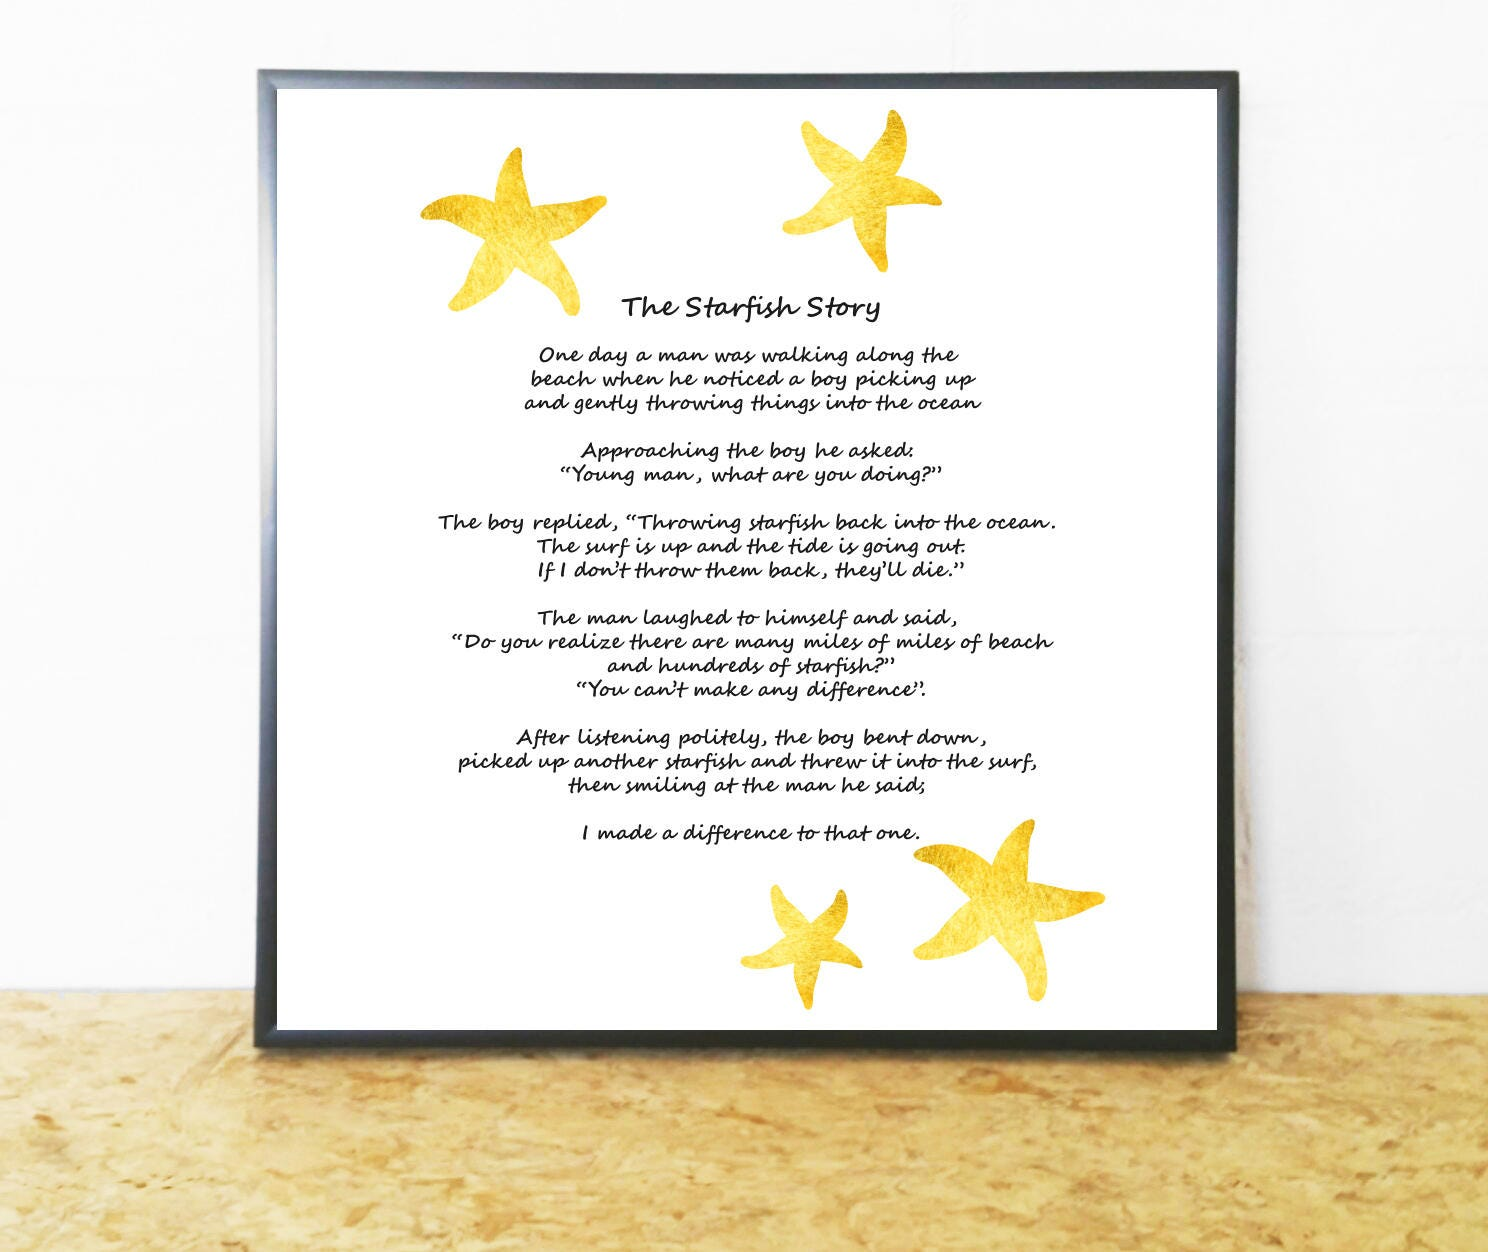 graphic about Starfish Story Printable known as Starfish Tale Printable Variation - 0425